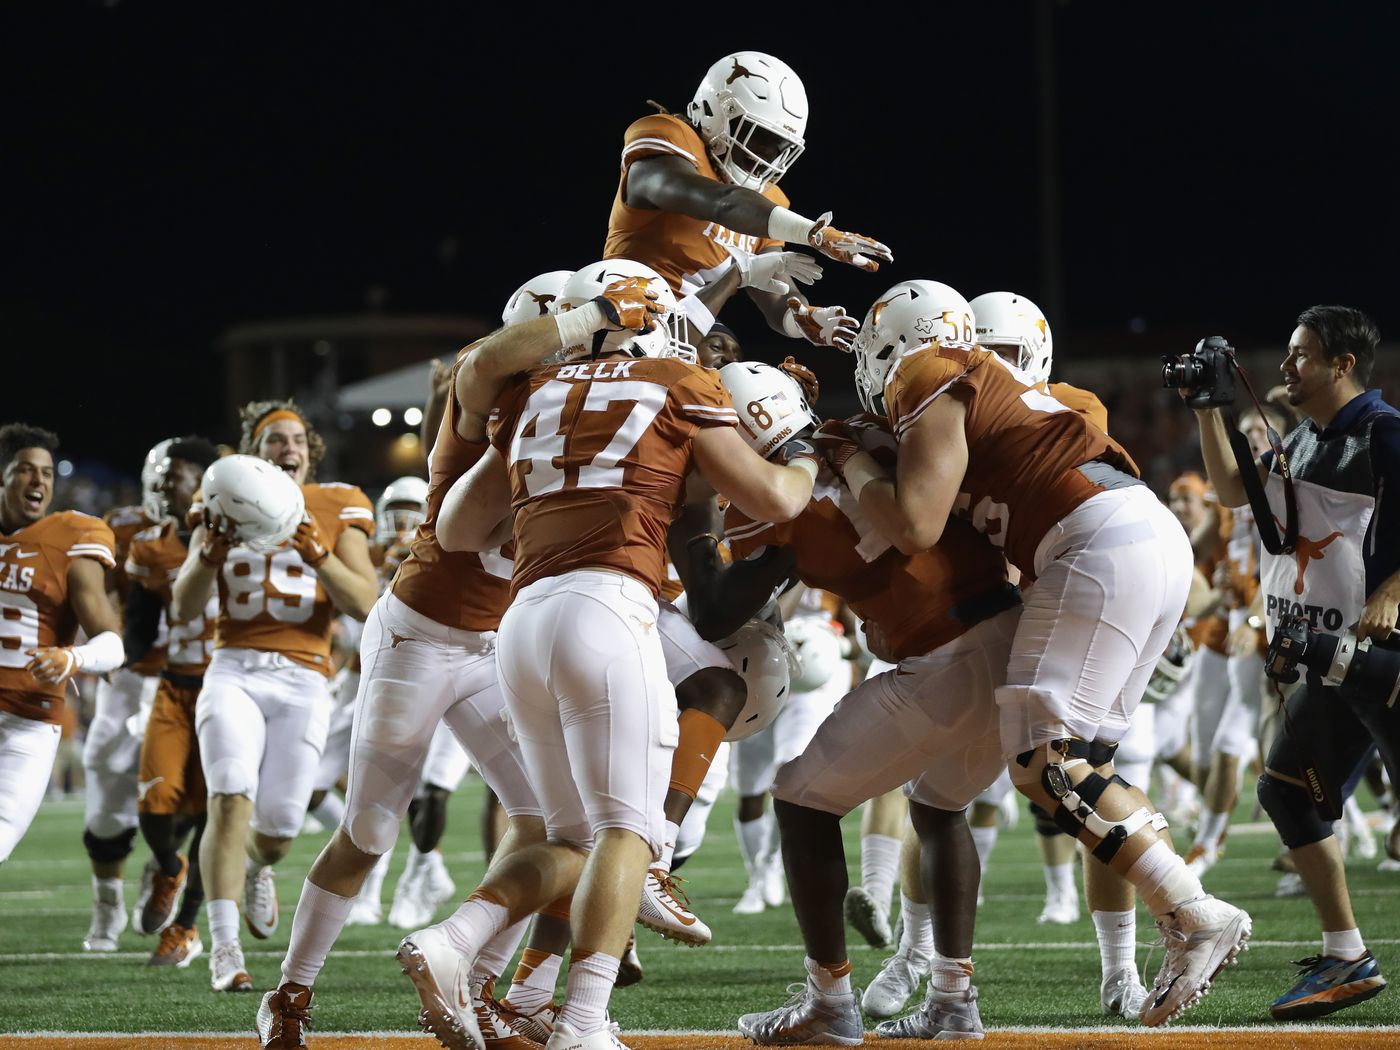 Let's always cherish that moment when we thought Notre Dame-Texas